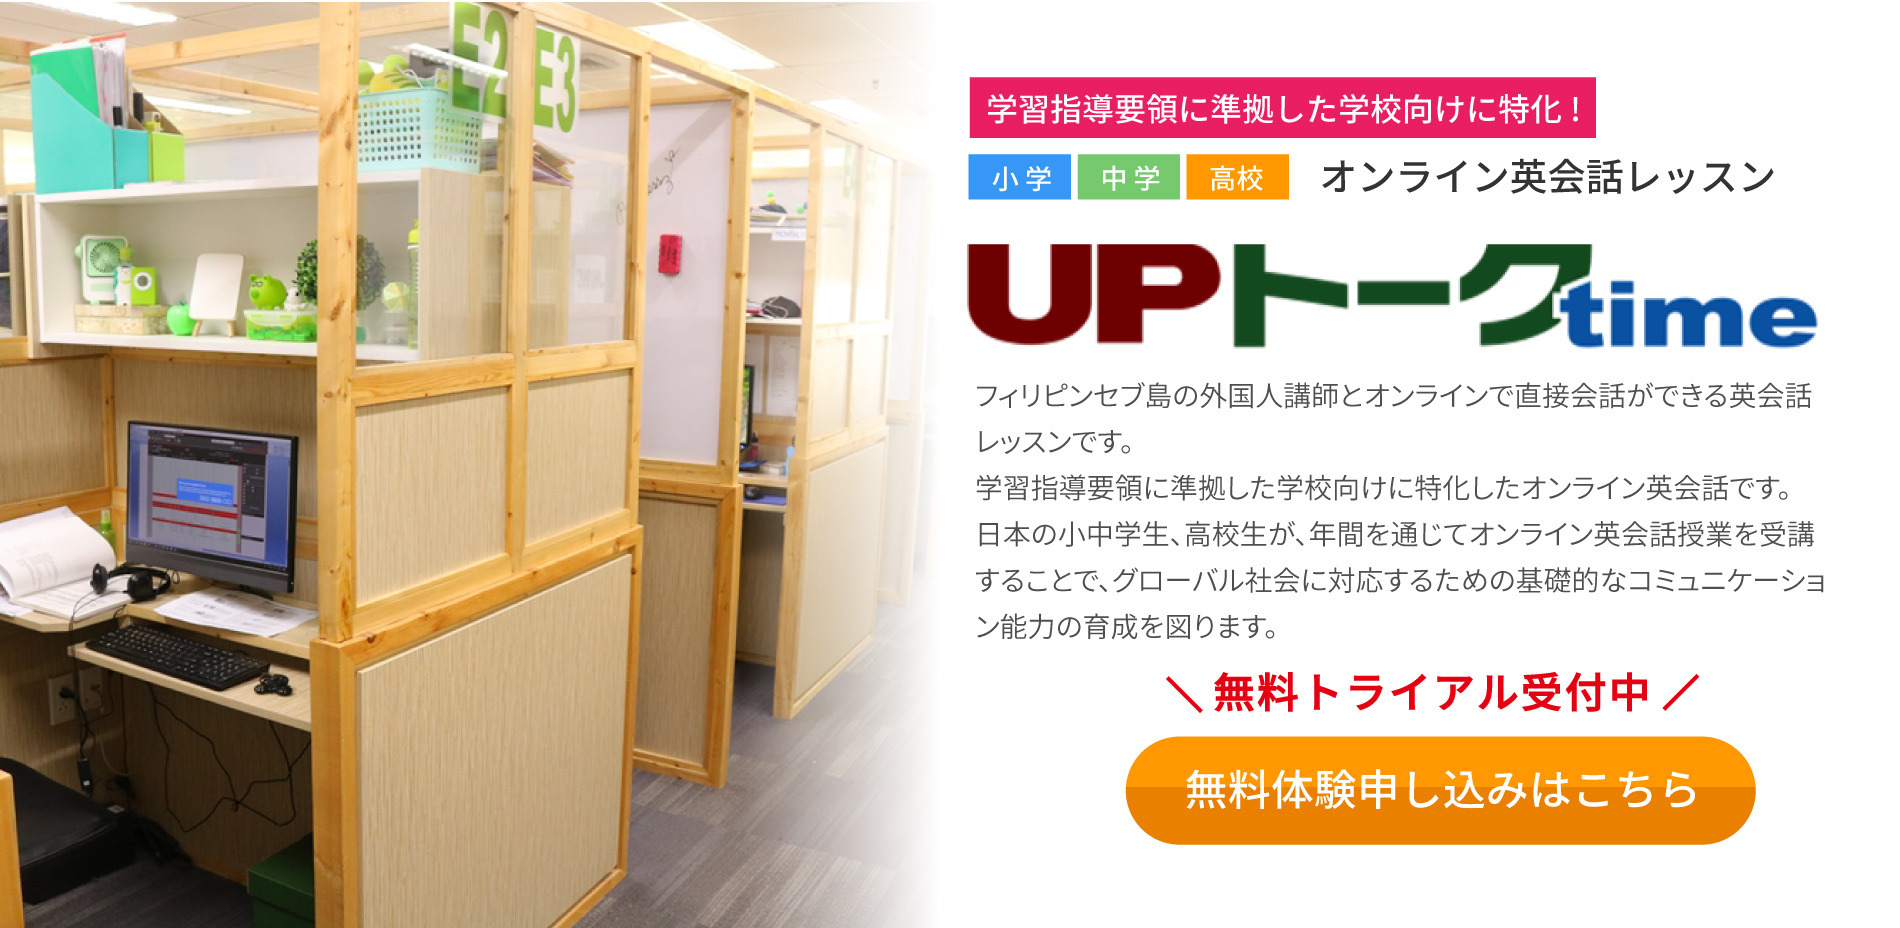 UPトークtime